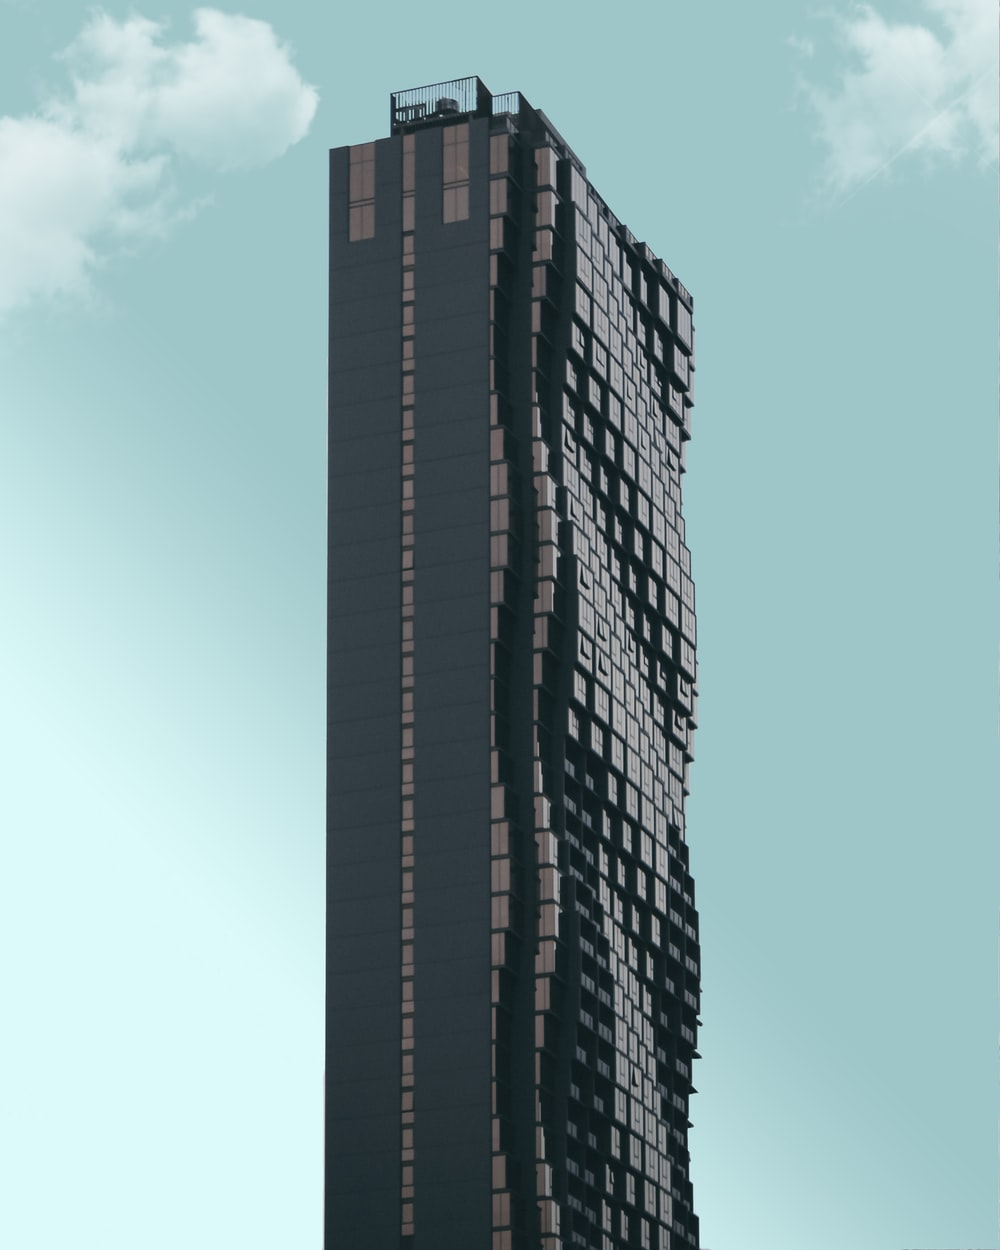 black high-rise building during daytime